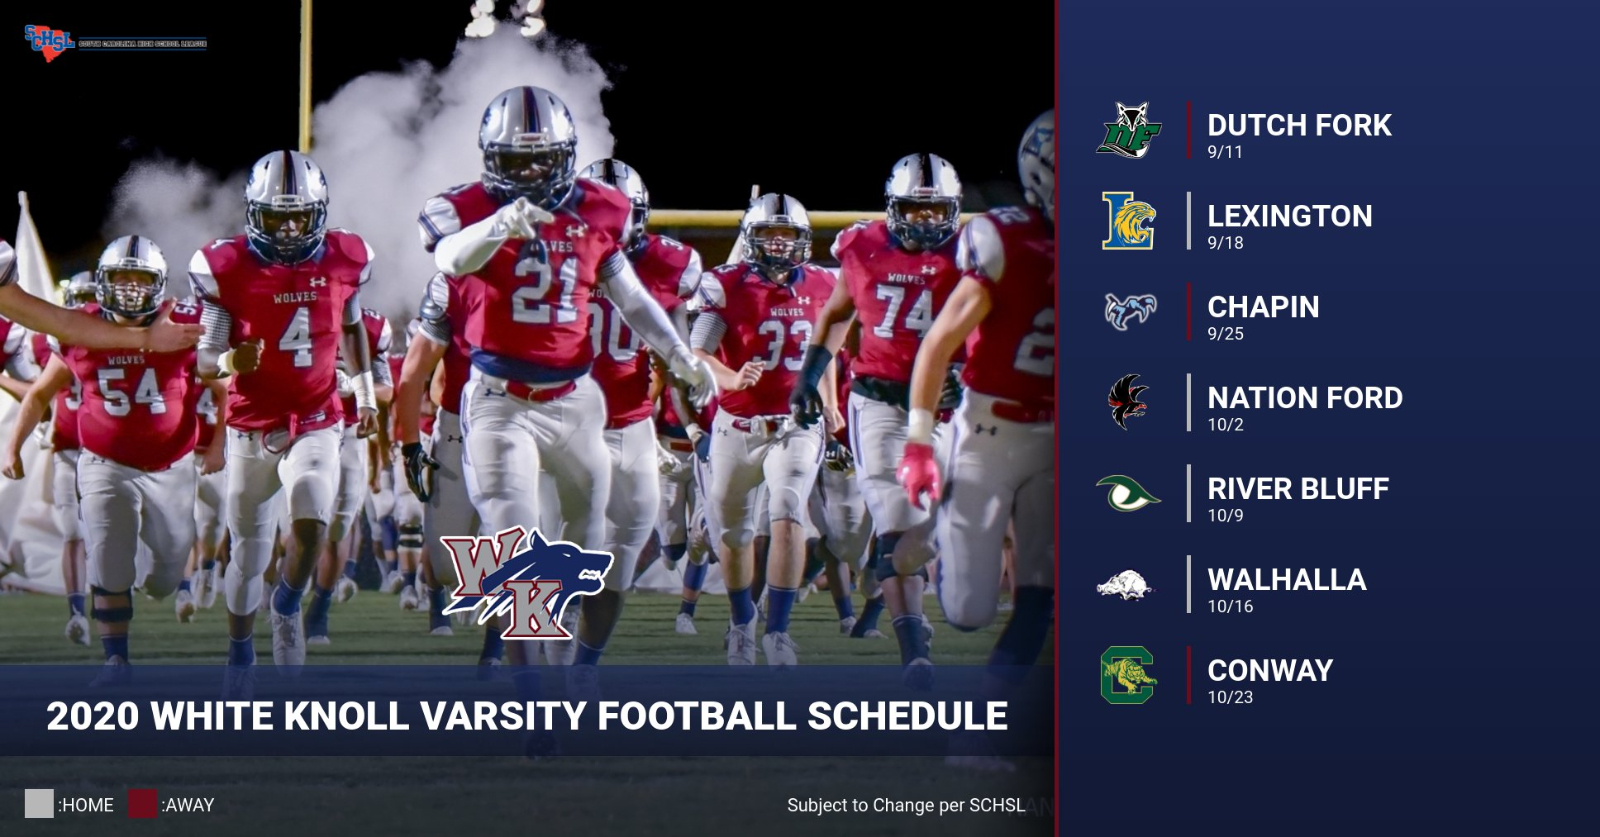 Updated 2020 White Knoll Varsity Football Schedule